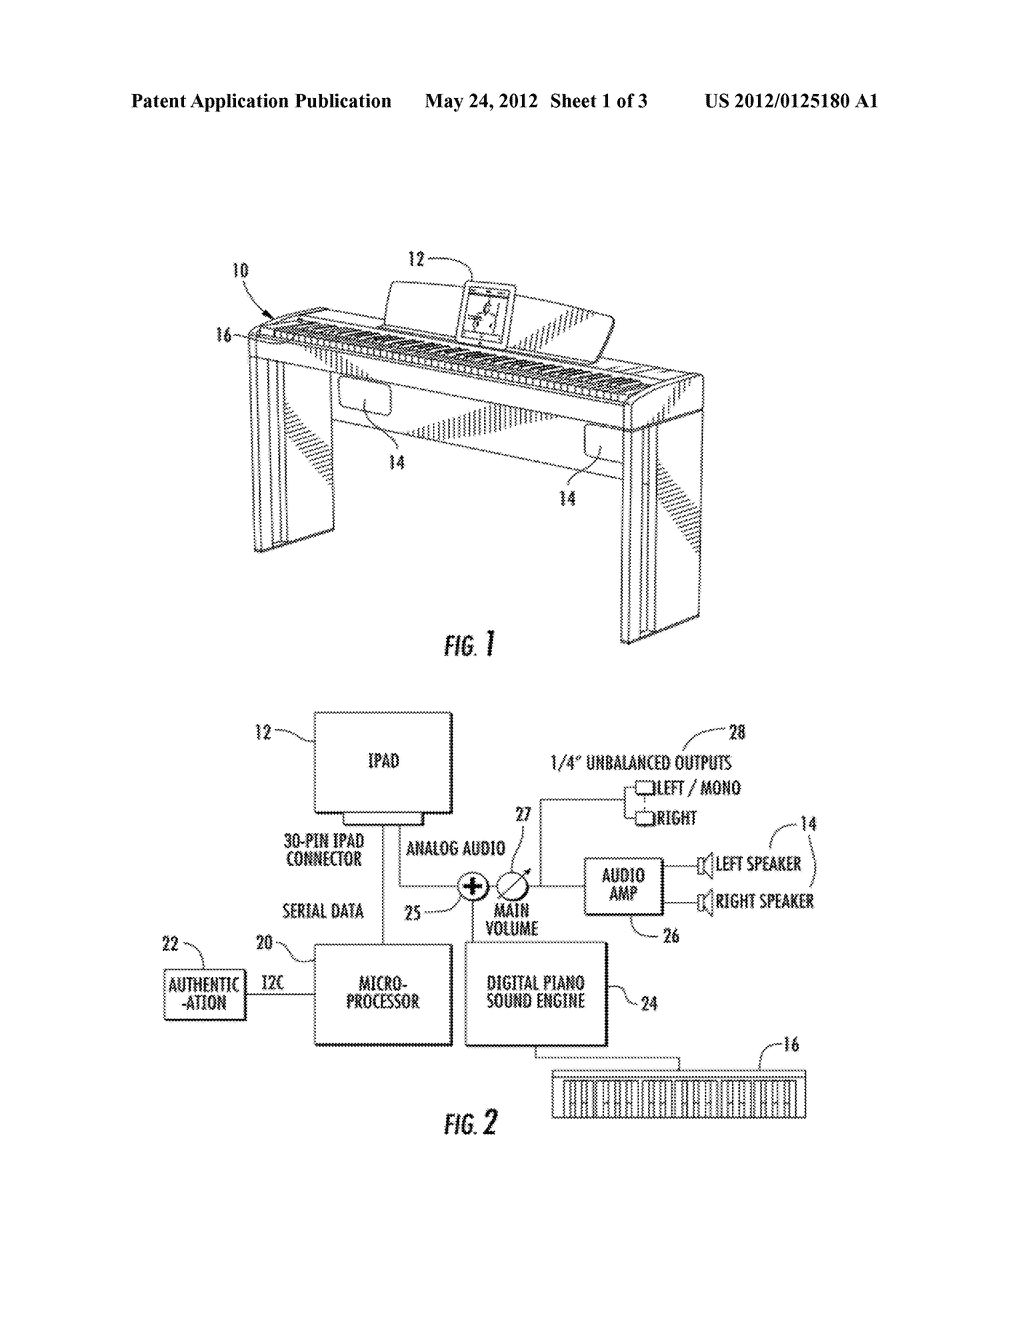 Digital piano with dock for a handheld computing device diagram digital piano with dock for a handheld computing device diagram schematic and image 02 pooptronica